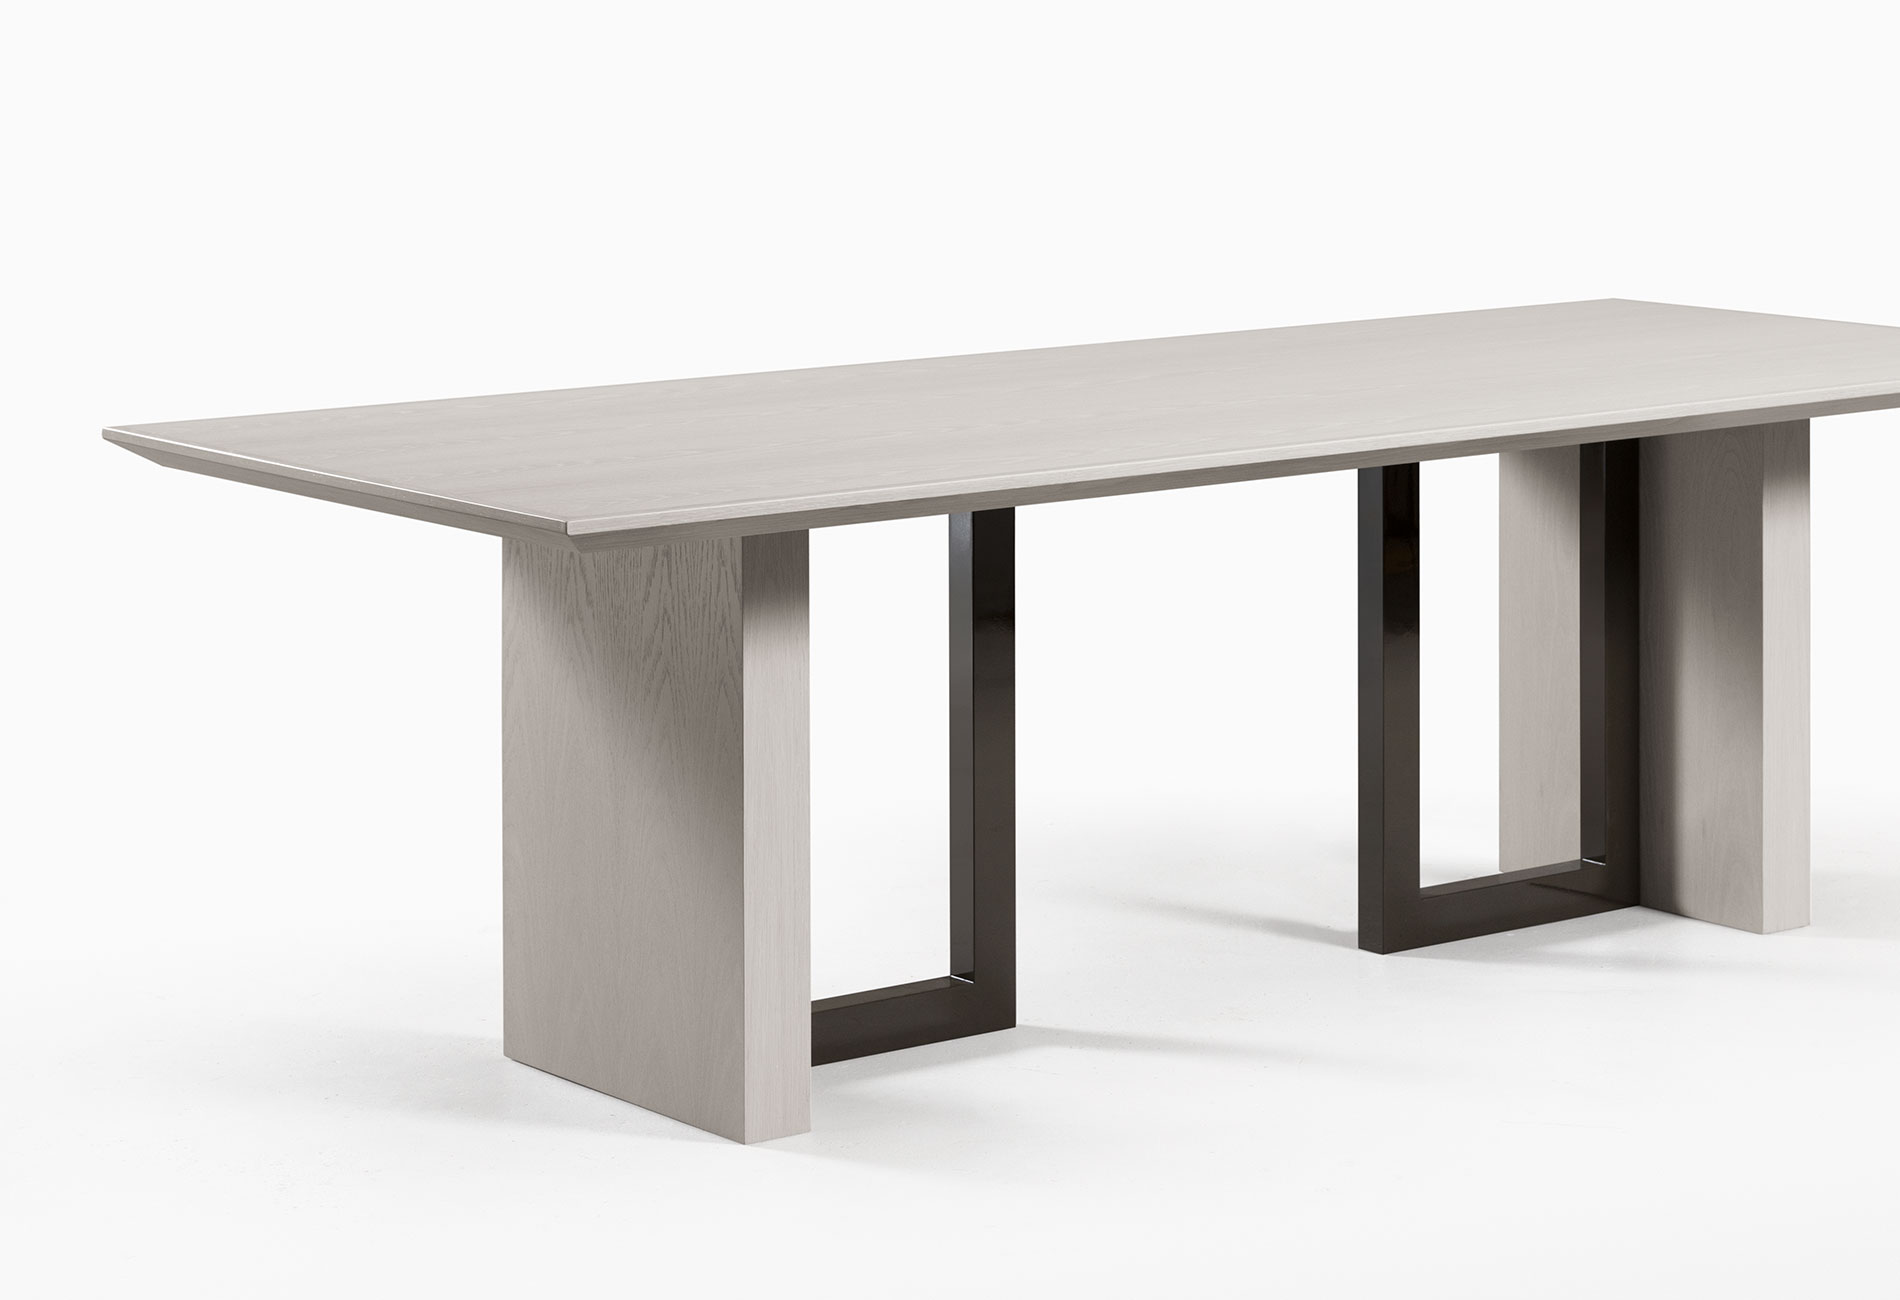 Monterrey-Dining-Table-4.jpg